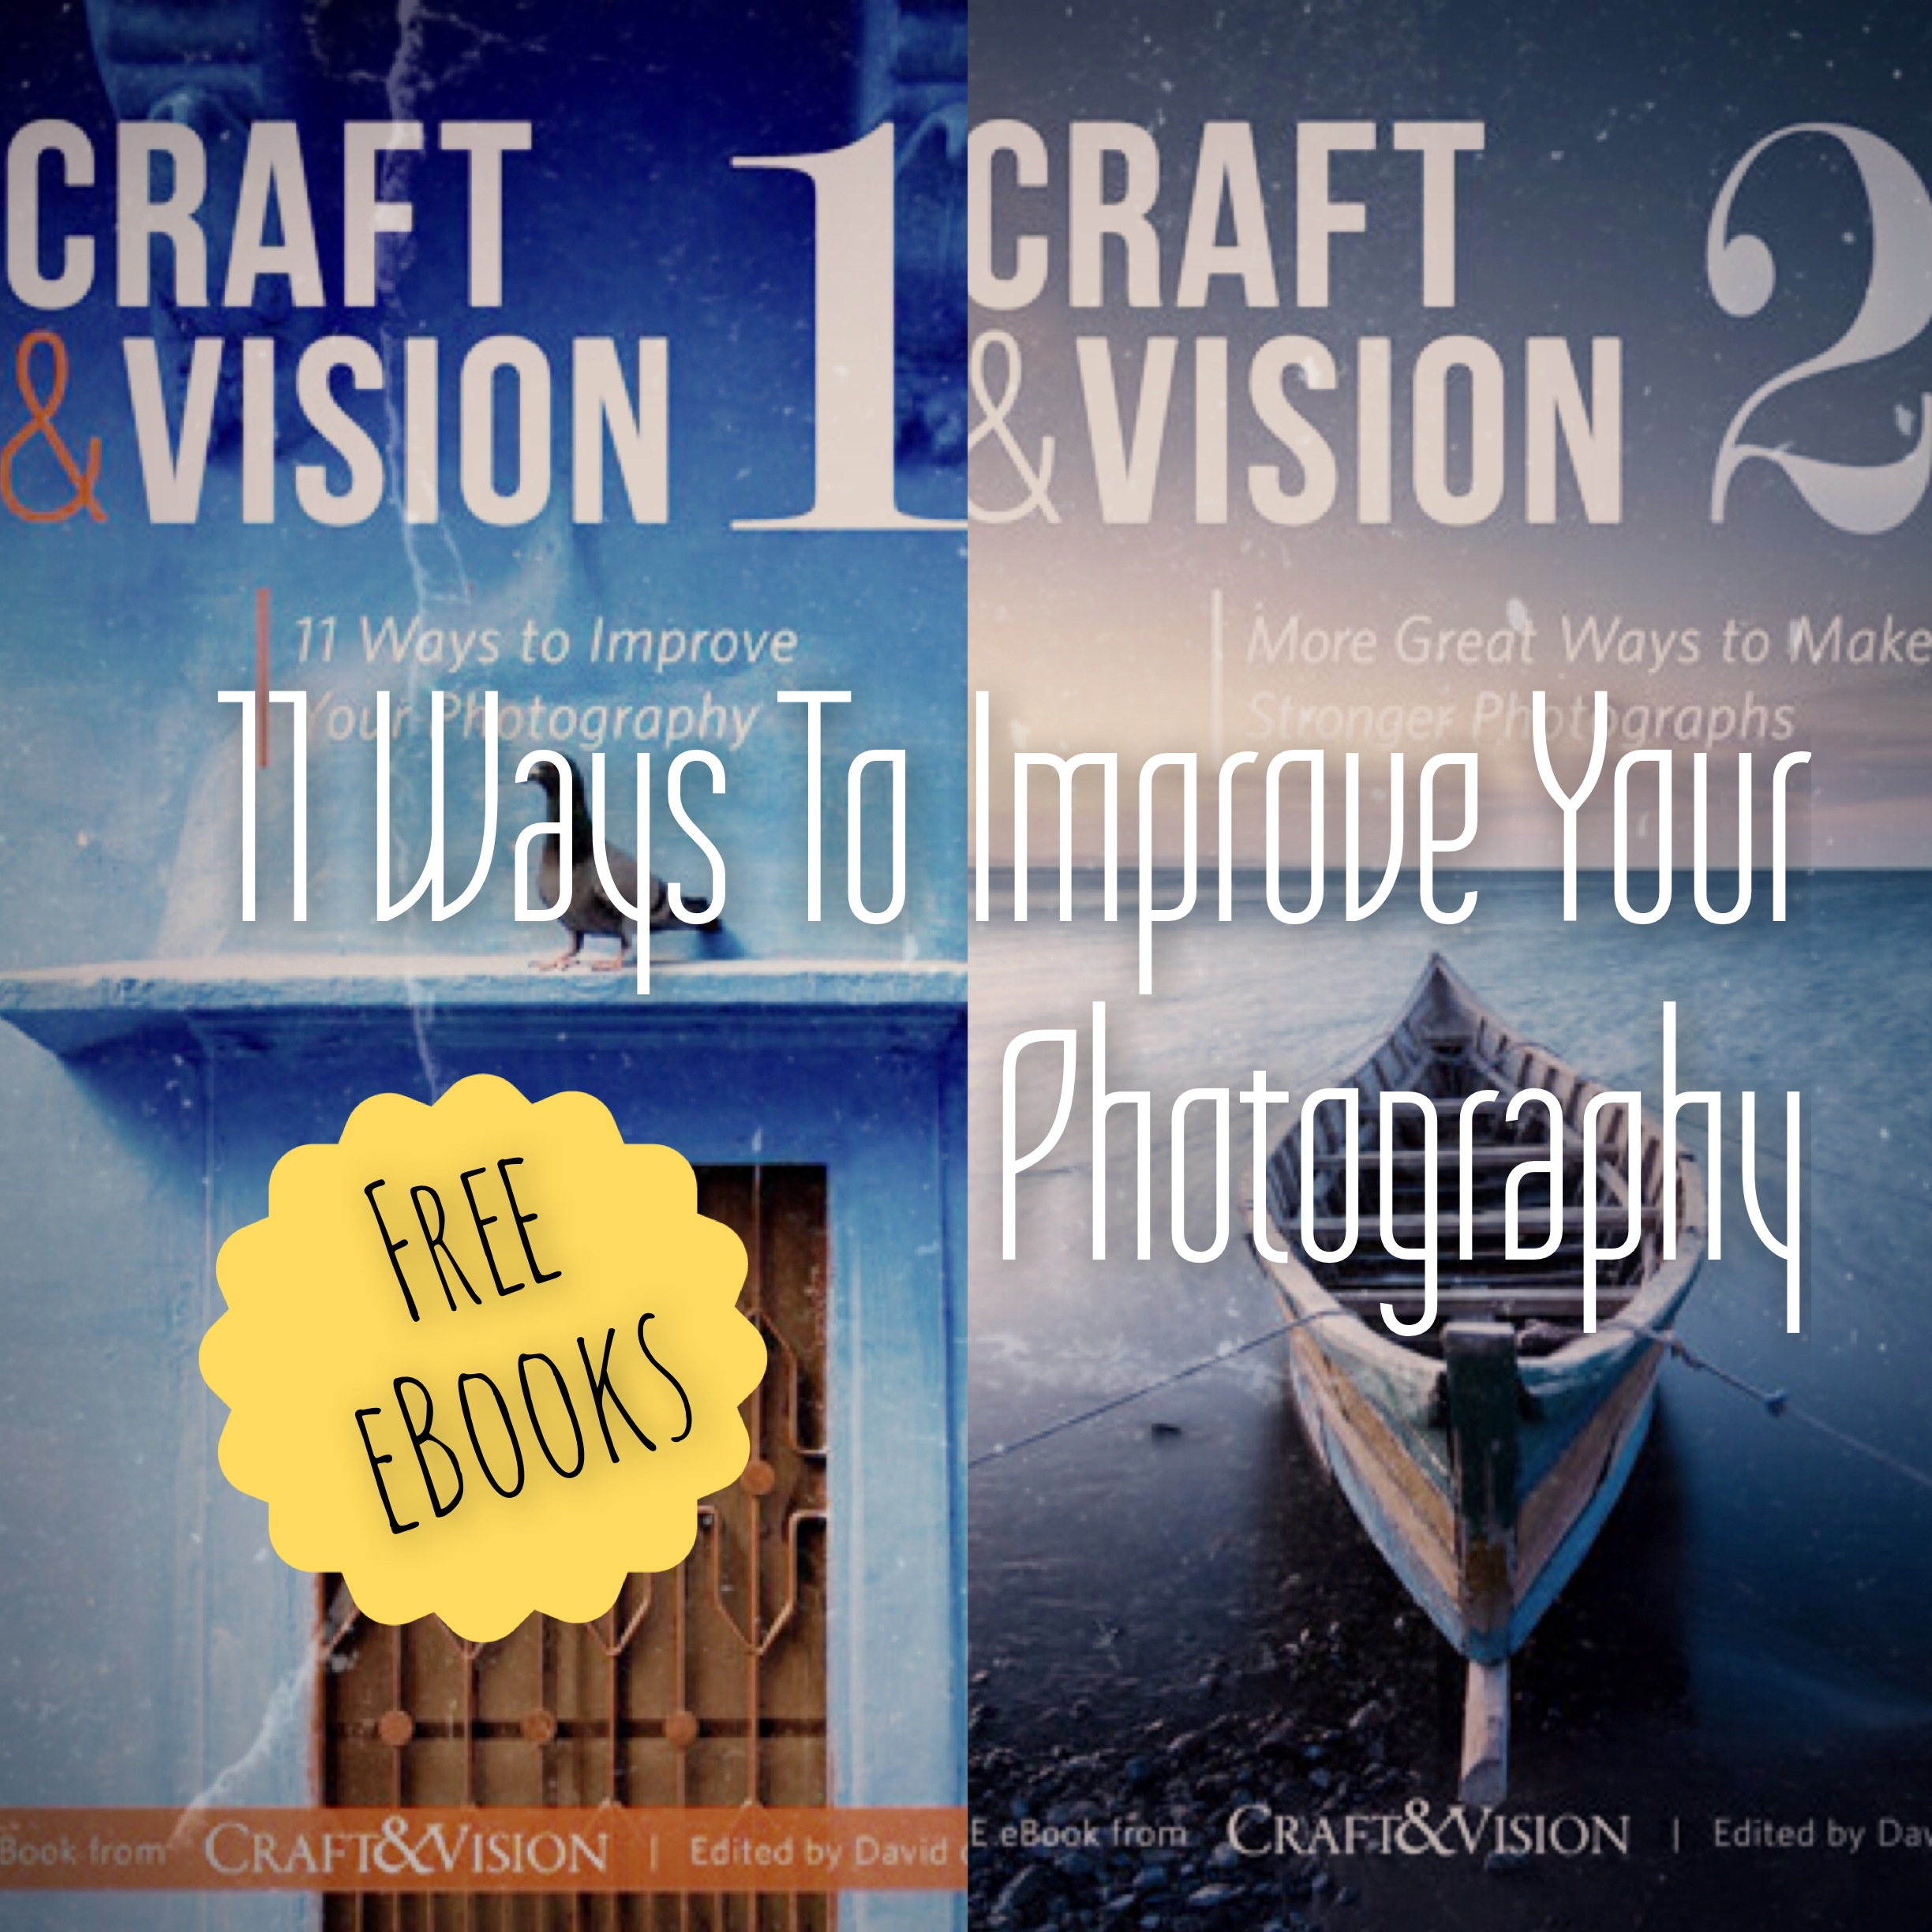 11 Ways To Improve Your Photography